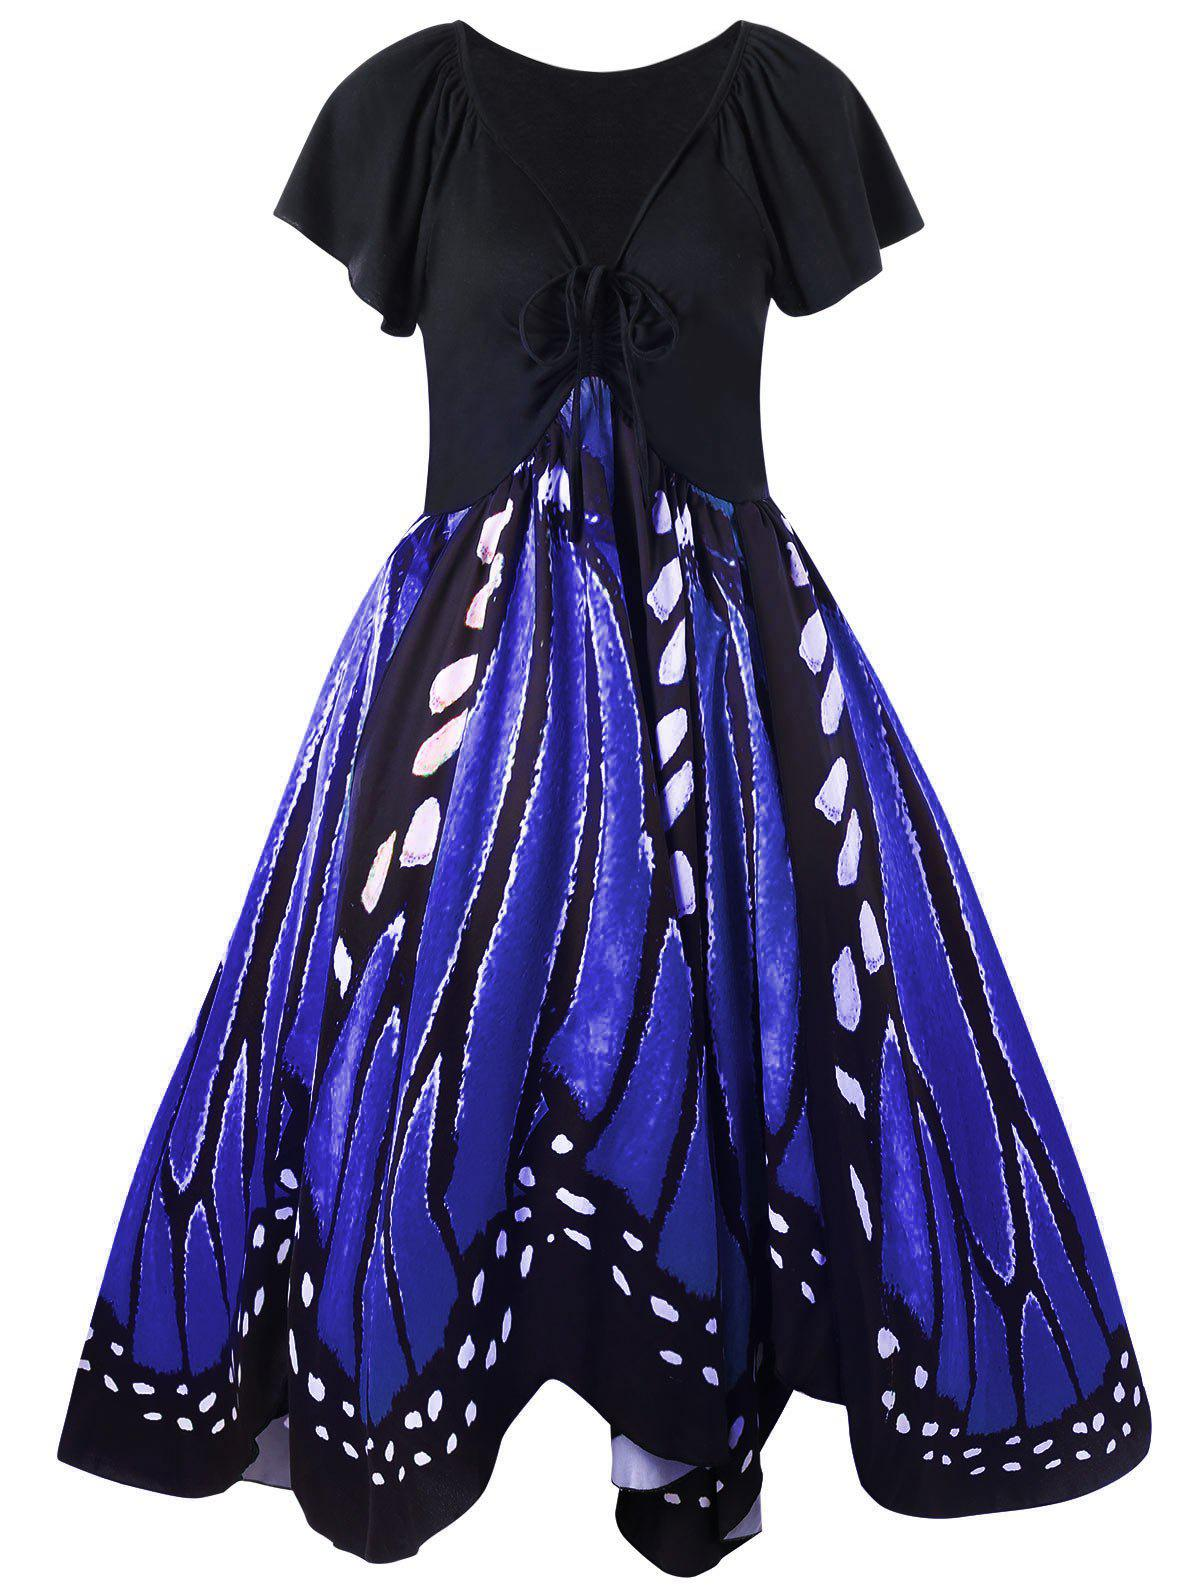 Plus Size Low Cut Butterfly Print Swing DressWOMEN<br><br>Size: 2XL; Color: BLUE; Style: Vintage; Material: Polyester,Spandex; Silhouette: A-Line; Dresses Length: Knee-Length; Neckline: Plunging Neck; Sleeve Length: Short Sleeves; Pattern Type: Butterfly; With Belt: No; Season: Fall,Spring; Weight: 0.3700kg; Package Contents: 1 x Dress;